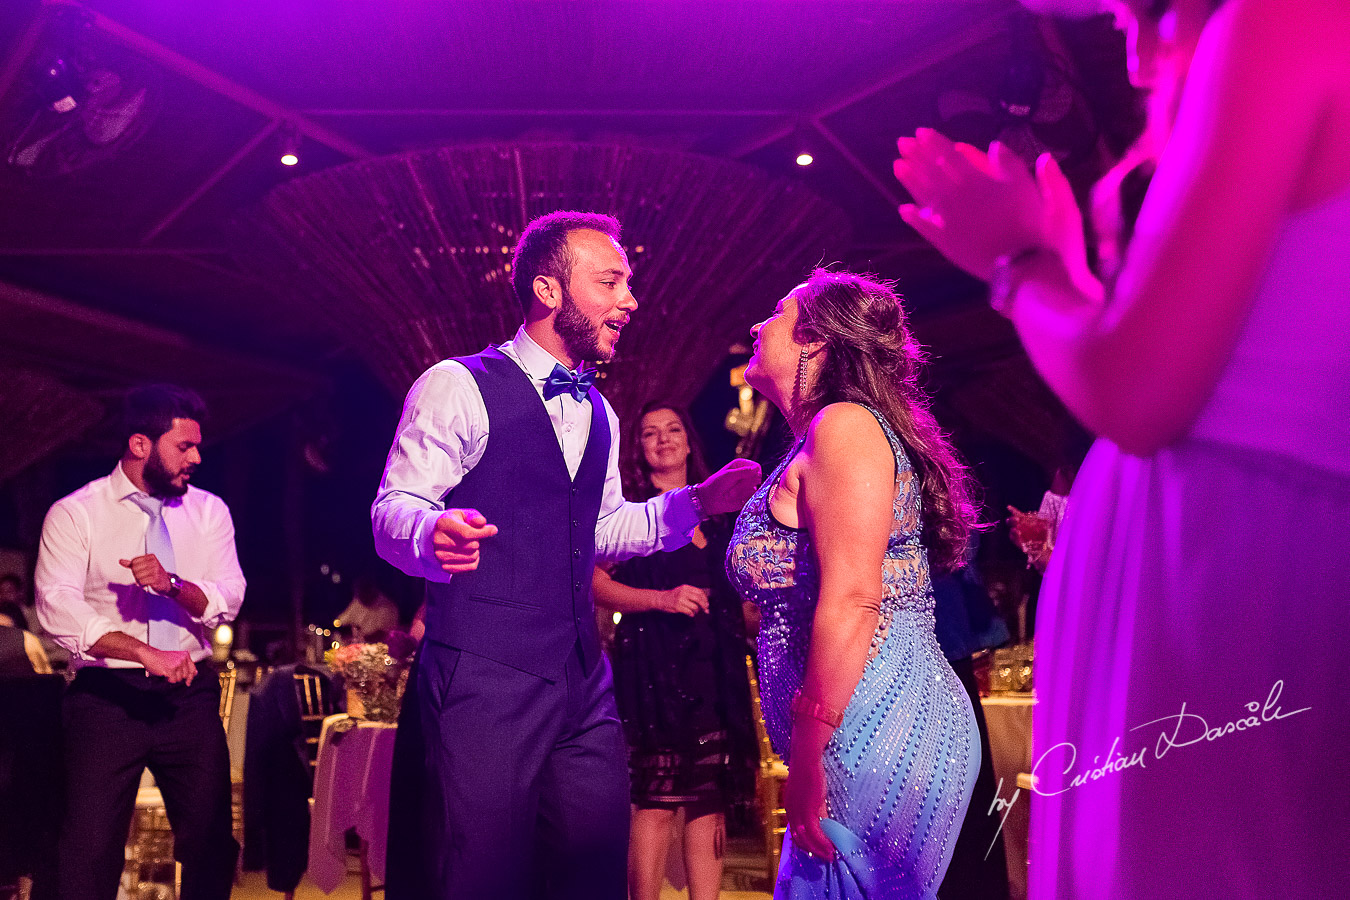 Groom dancing with his mother, a unique moment photographed as part of an Exclusive Wedding photography at Grand Resort Limassol, captured by Cyprus Wedding Photographer Cristian Dascalu.